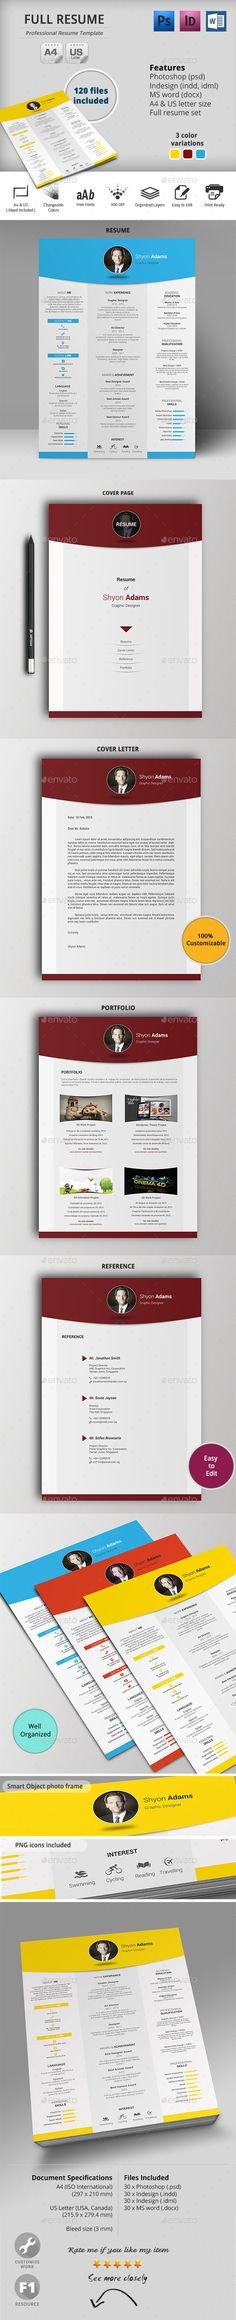 ProDJ - DJ Press Kit \/ DJ Resume PSD Template Press kits, Psd - dj resume